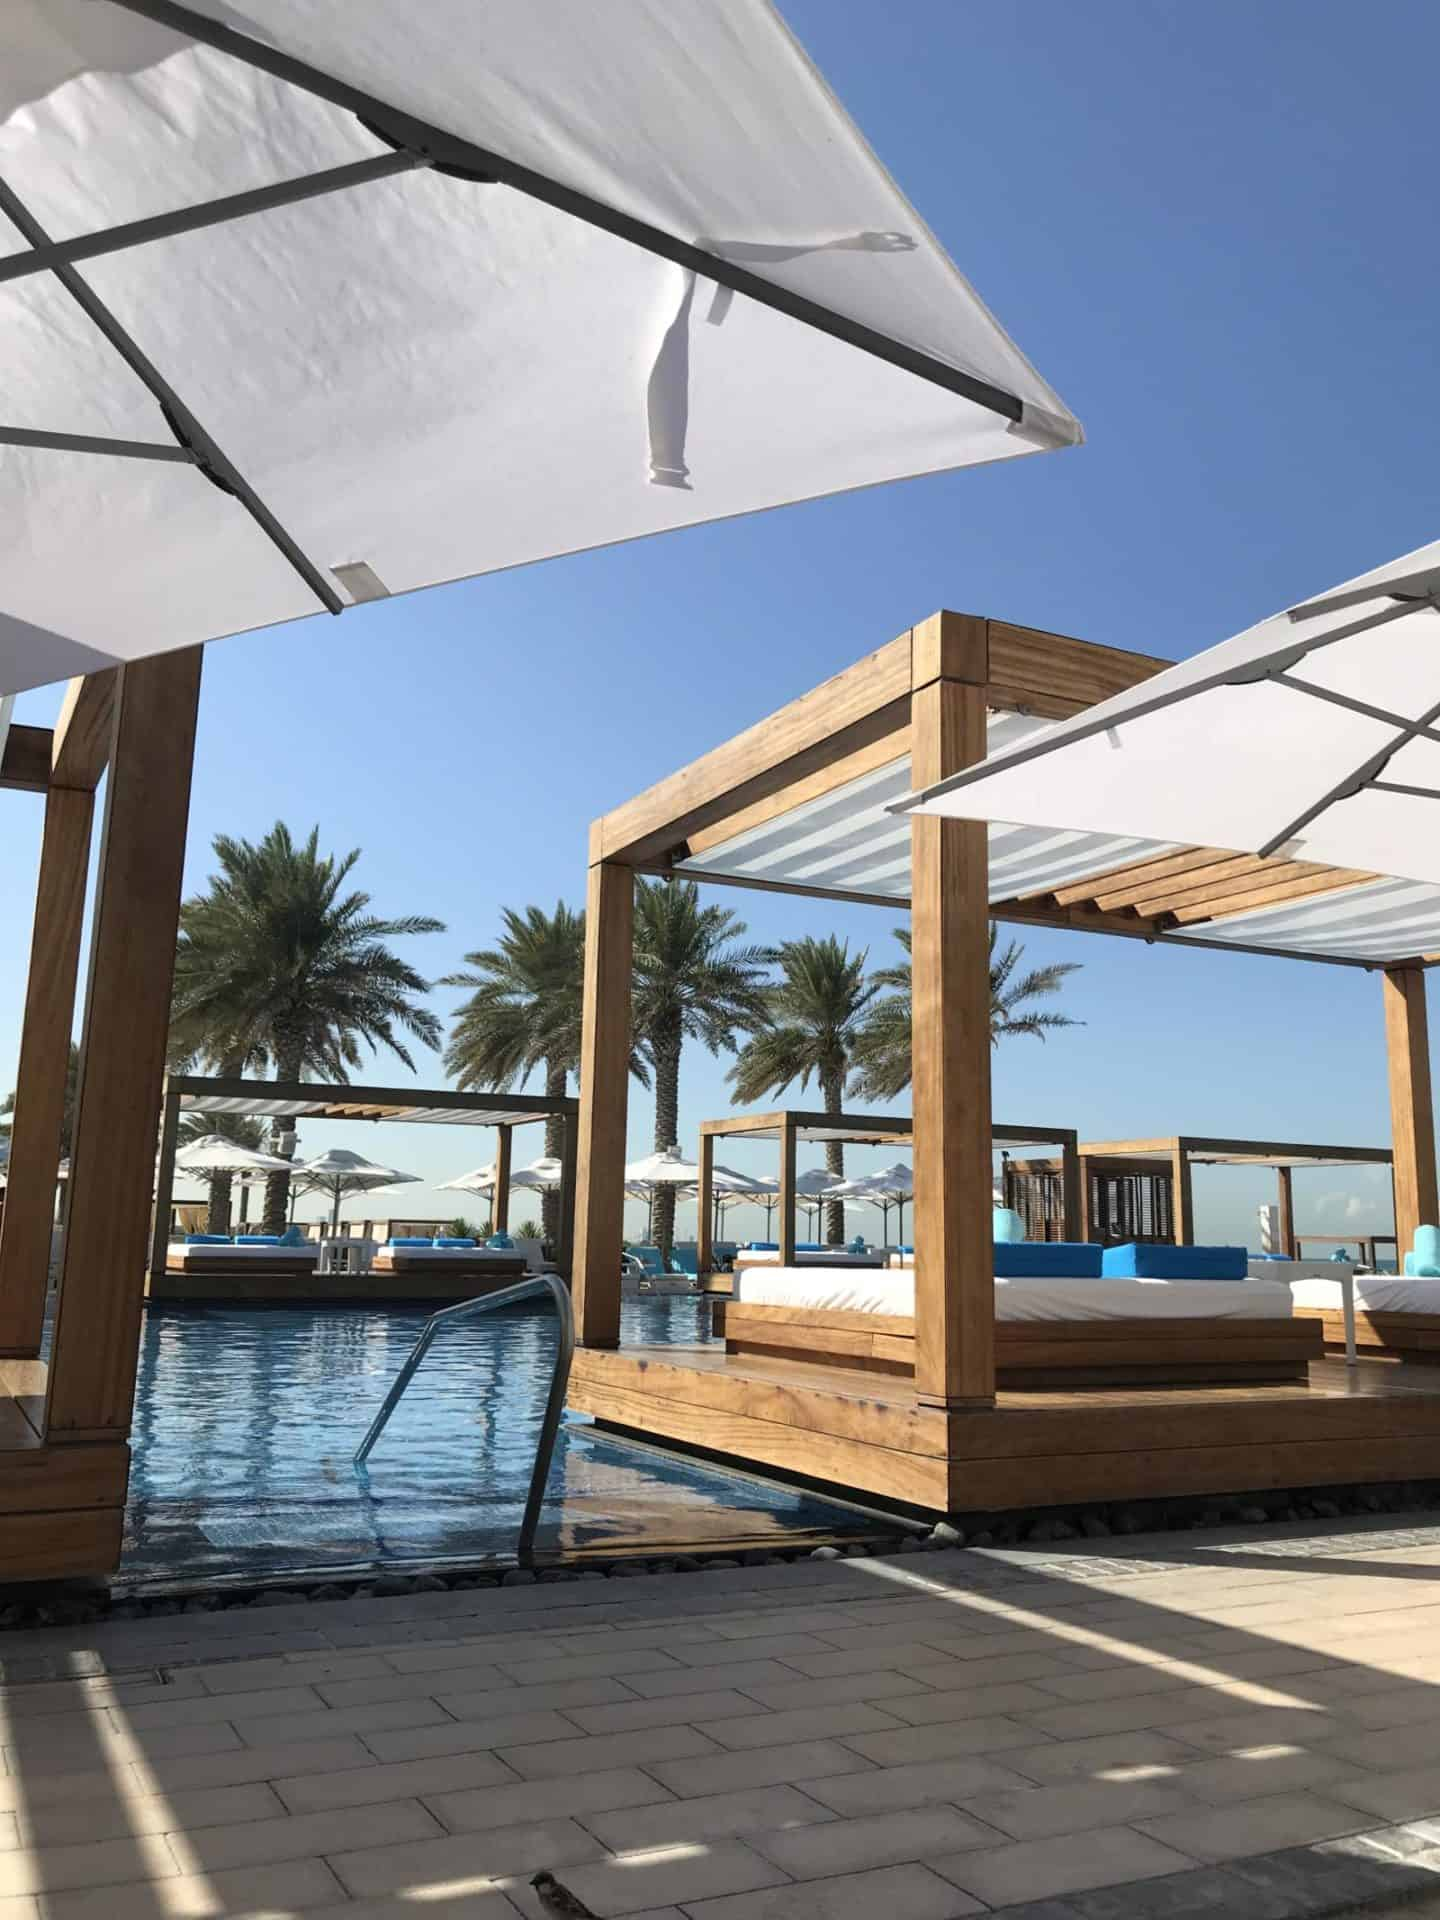 Privilee Review – The Best UAE Beach Club Membership